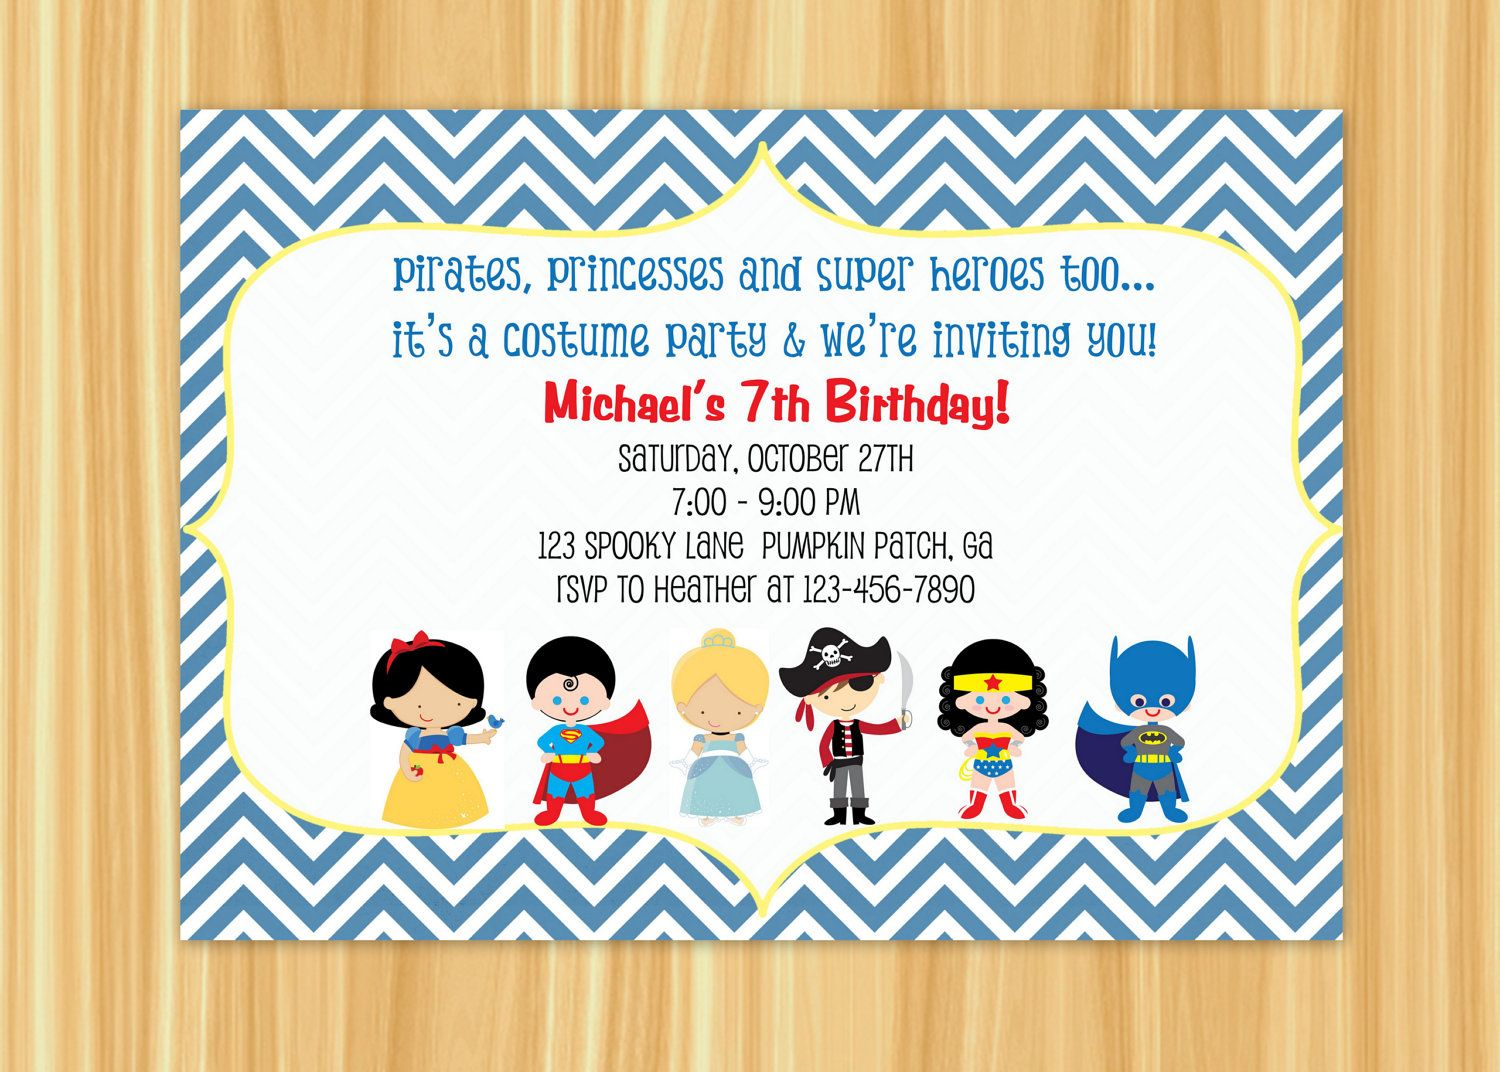 Custom Printable Kids Costume Party Birthday Invitation 1000 – Free Birthday Party Invitations for Kids